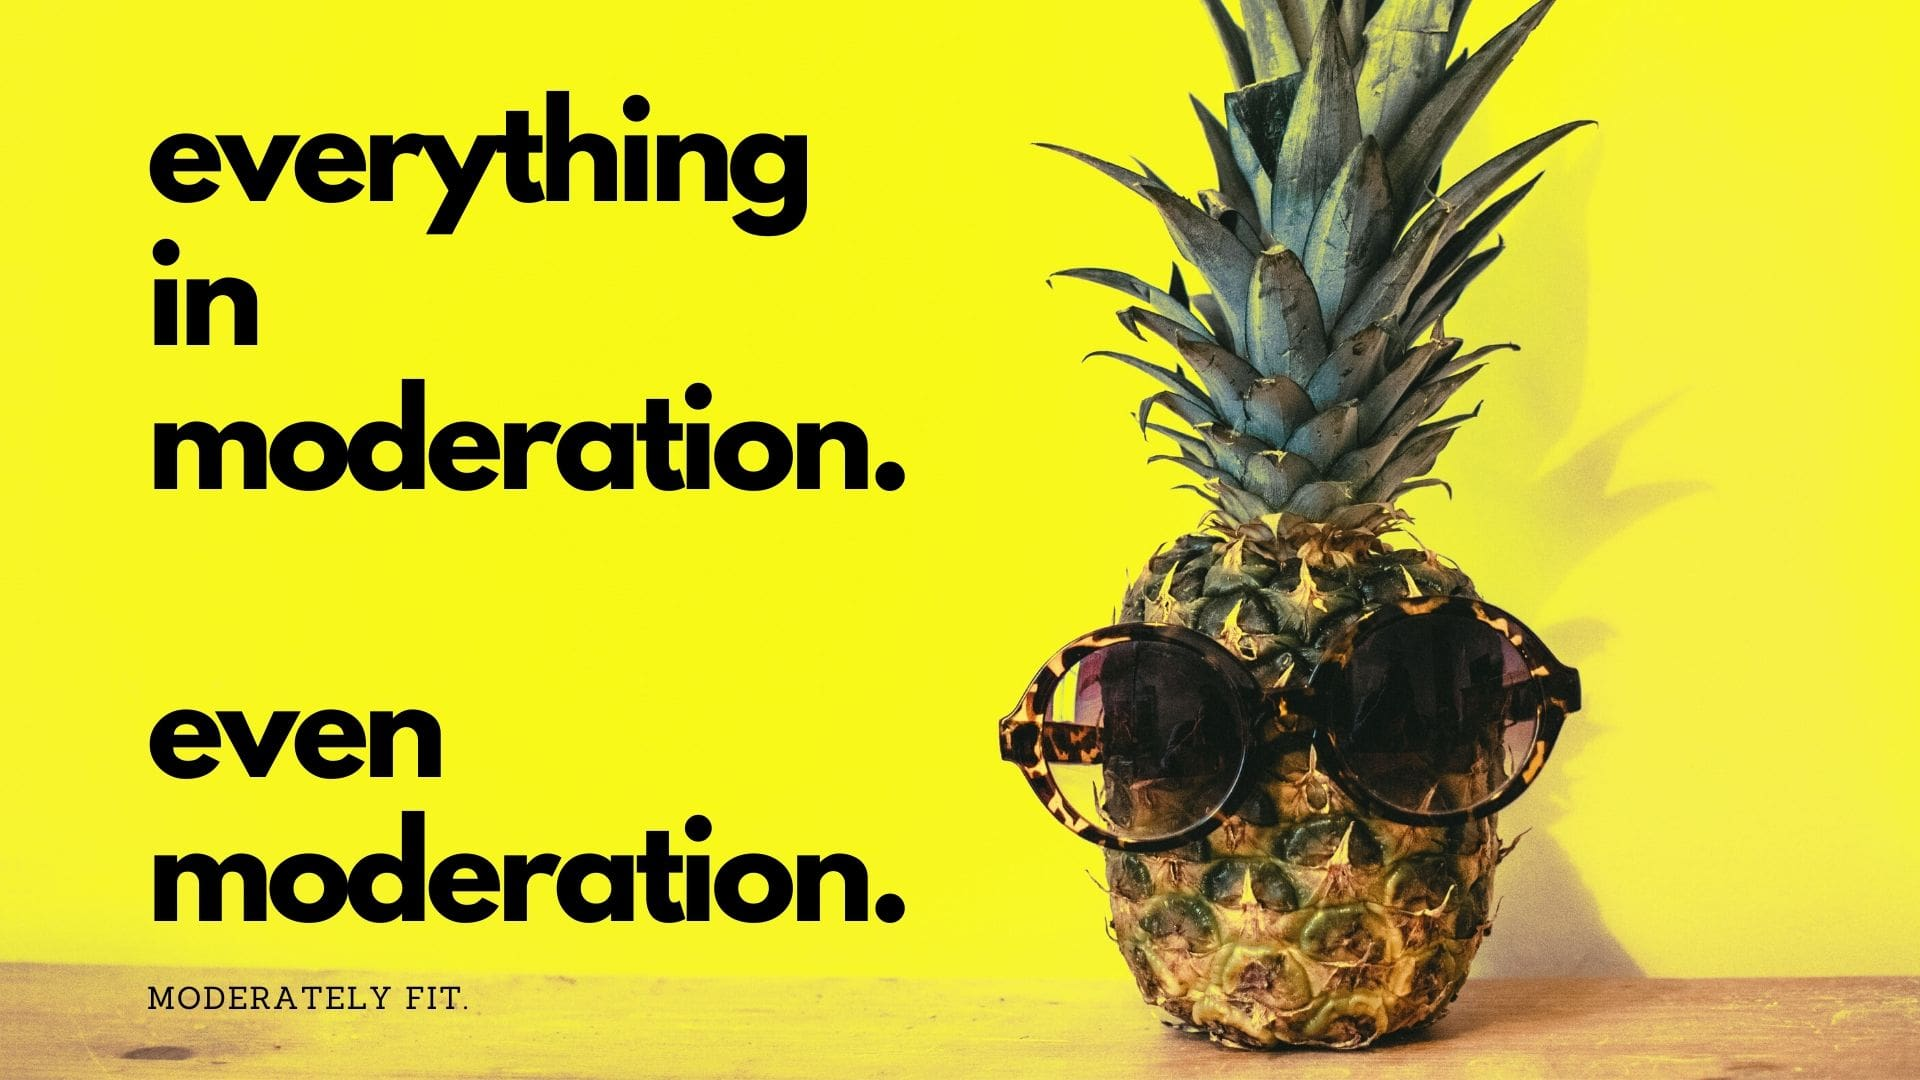 everything in moderation.